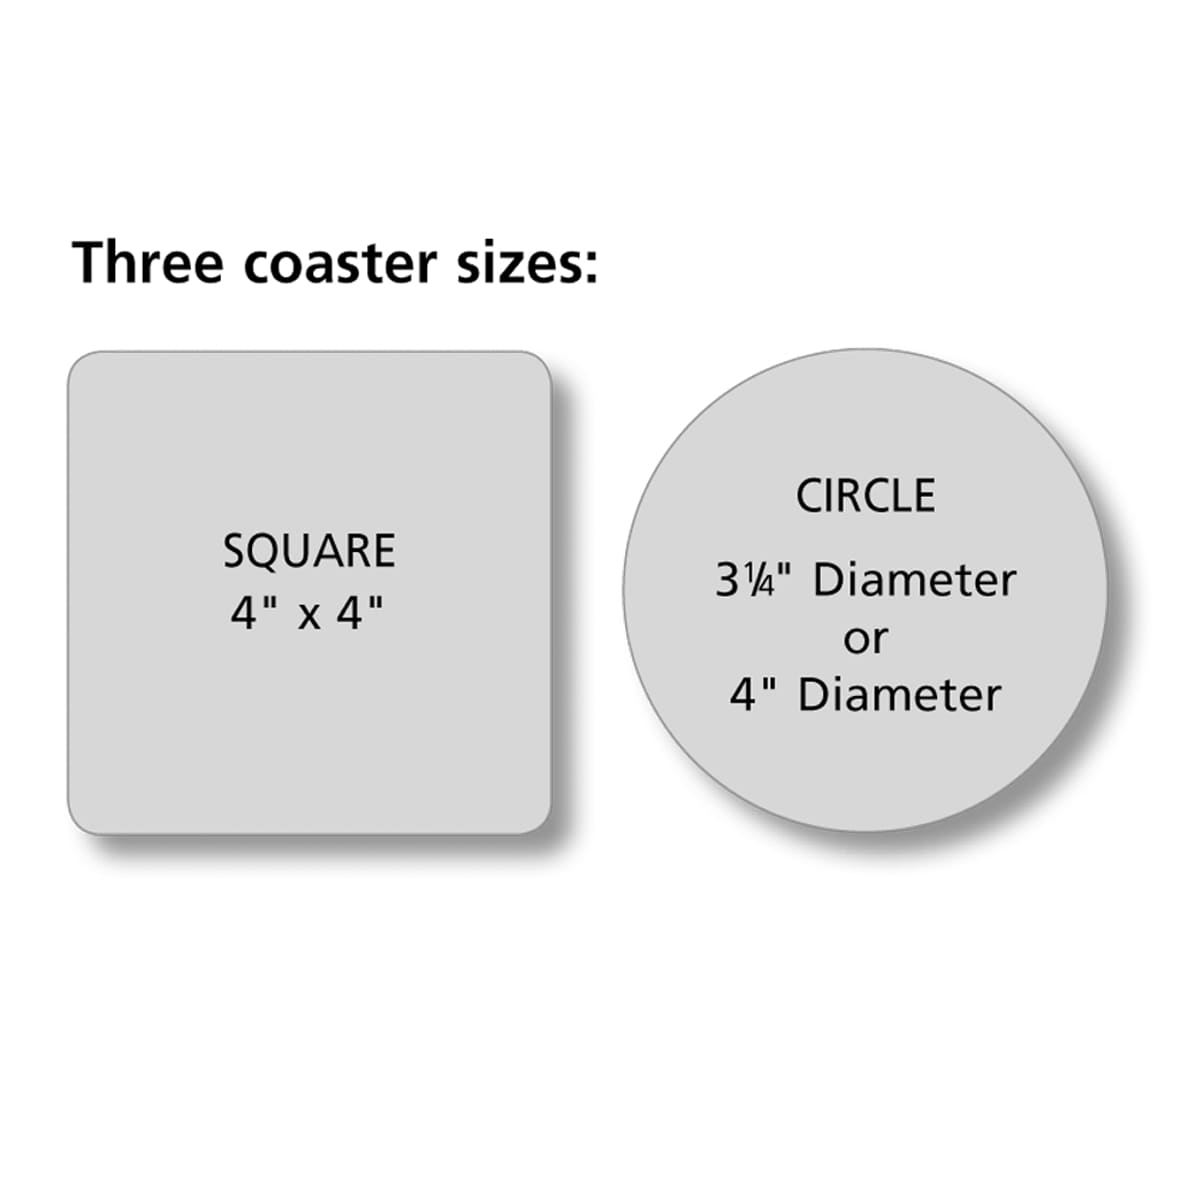 Enduraline lenticular coasters for Coaster size template